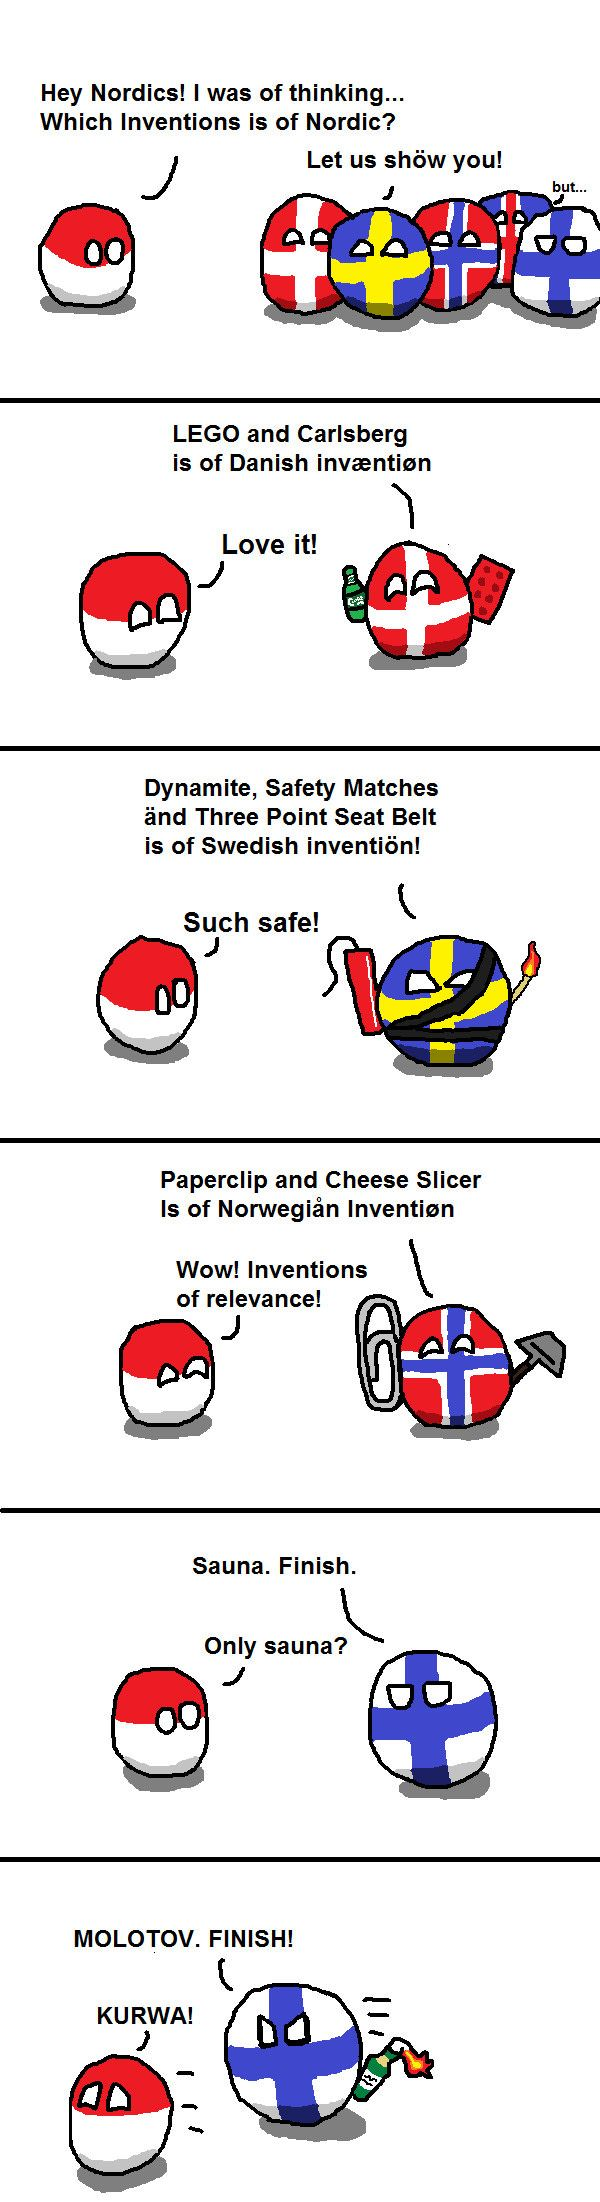 Nordic Inventions - 9GAG Poor Iceland is so irrelevant